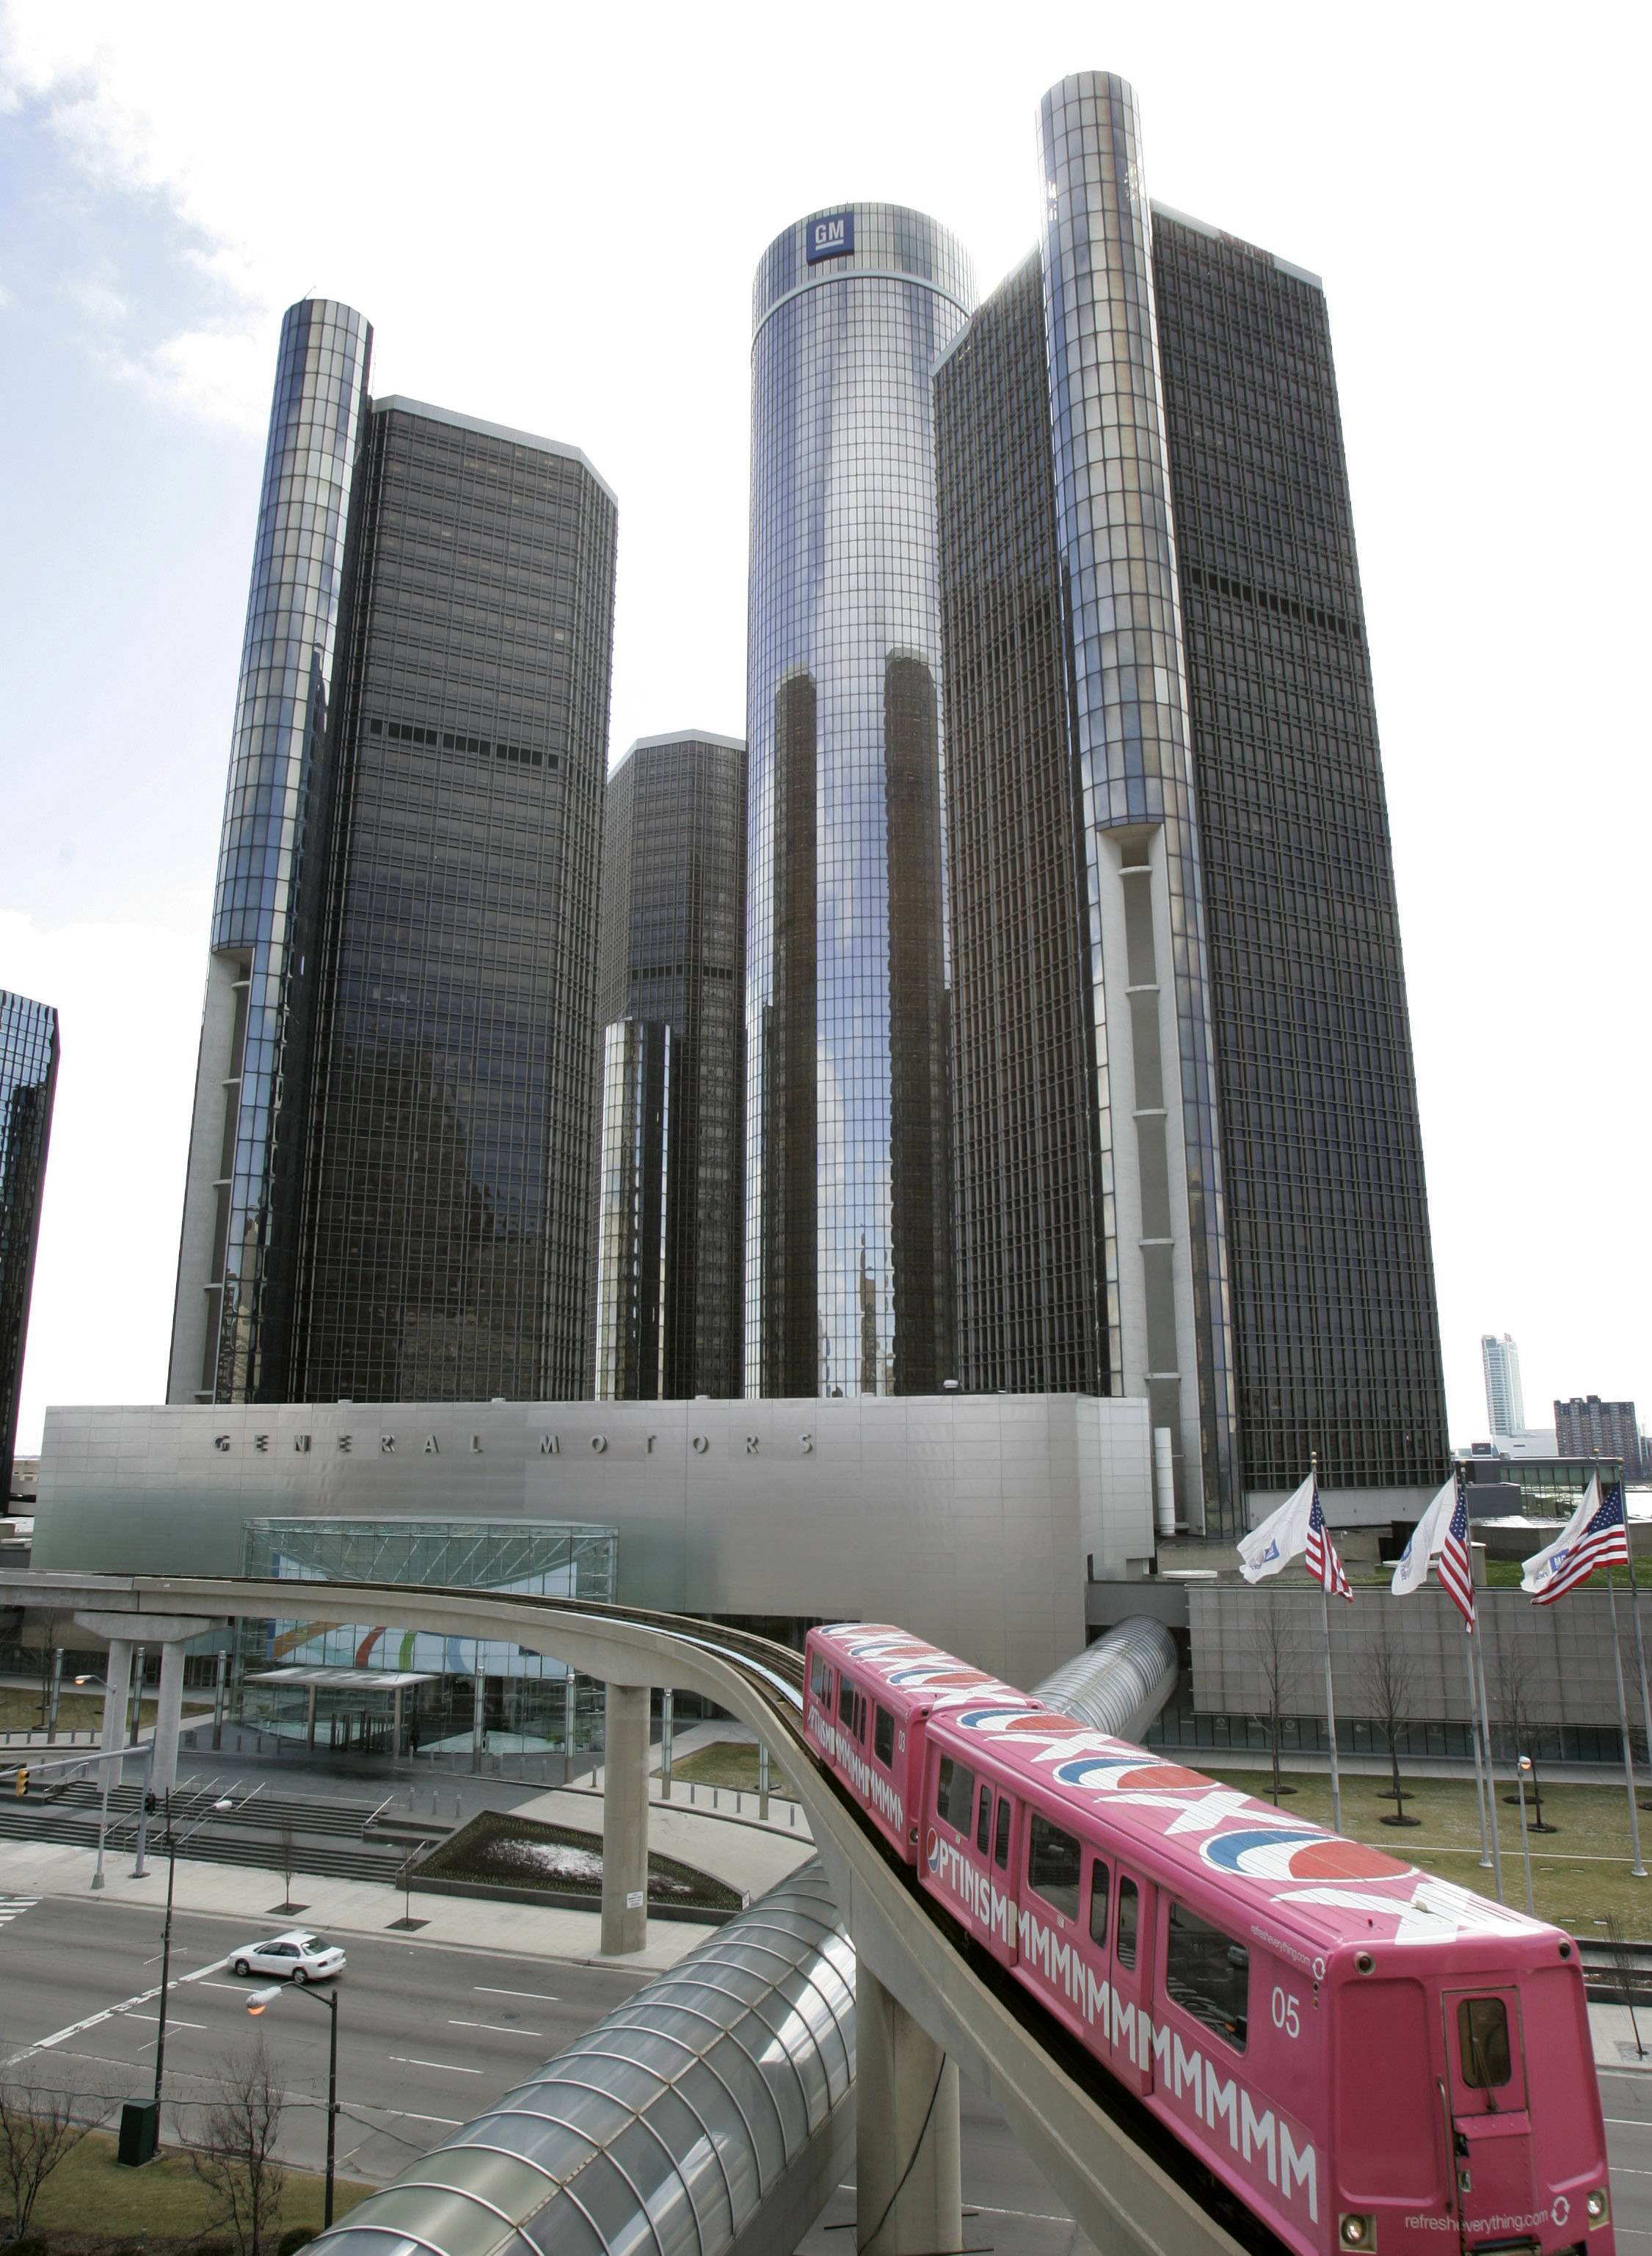 General Motors' world headquarters in Detroit. GM's 2009 government-funded bankruptcy allowed it to emerge a new, leaner company that has since racked up more than $20 billion in profits and added jobs in Detroit. For the city, the comeback will be much harder.